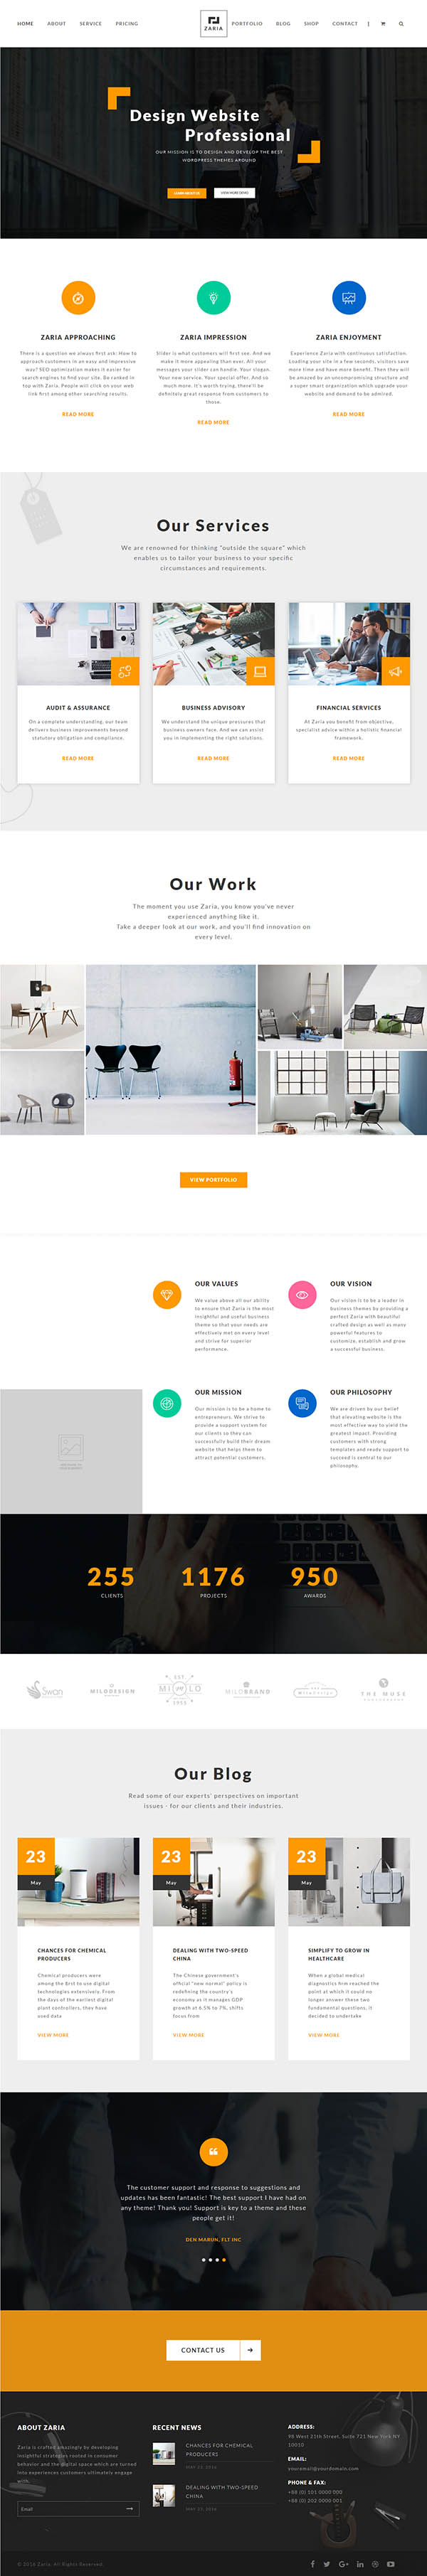 Zaria – A Beautiful & Smart Business WordPress Theme